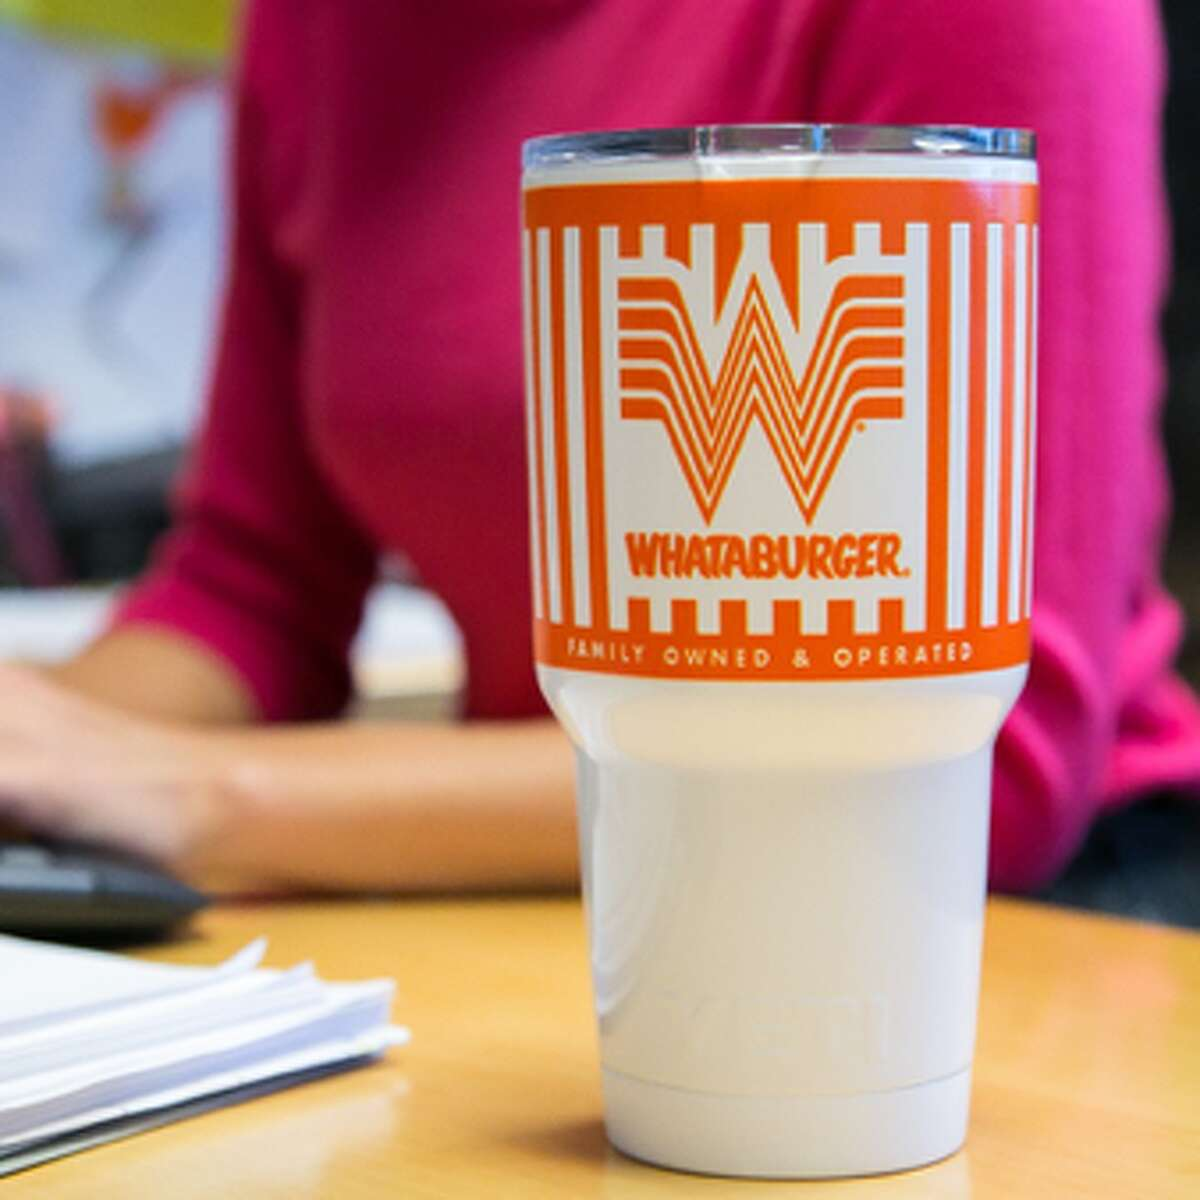 Whataburger and YETI partnered to create an official mug, branded with the burger company's Flying W.